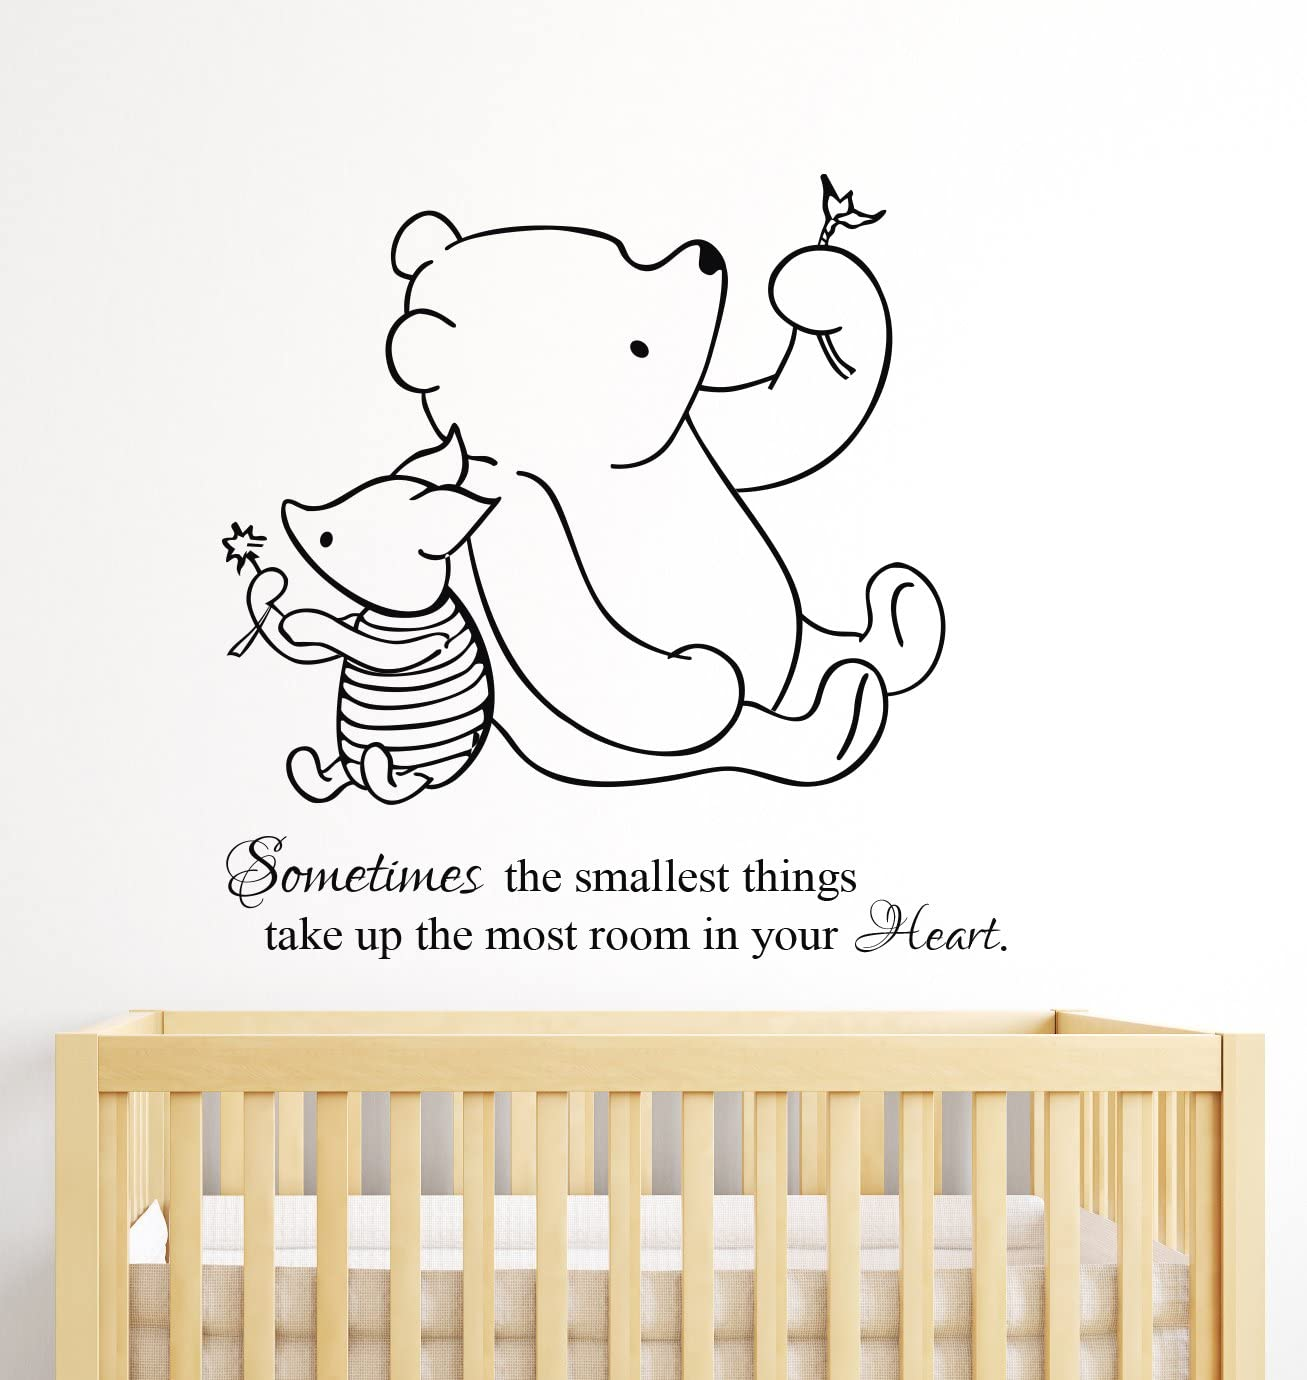 Winnie The Pooh Wall Decal Quote Sometimes The Smallest Things Take up The Most Room in Our Heart Nursery Decor Art Kids Room